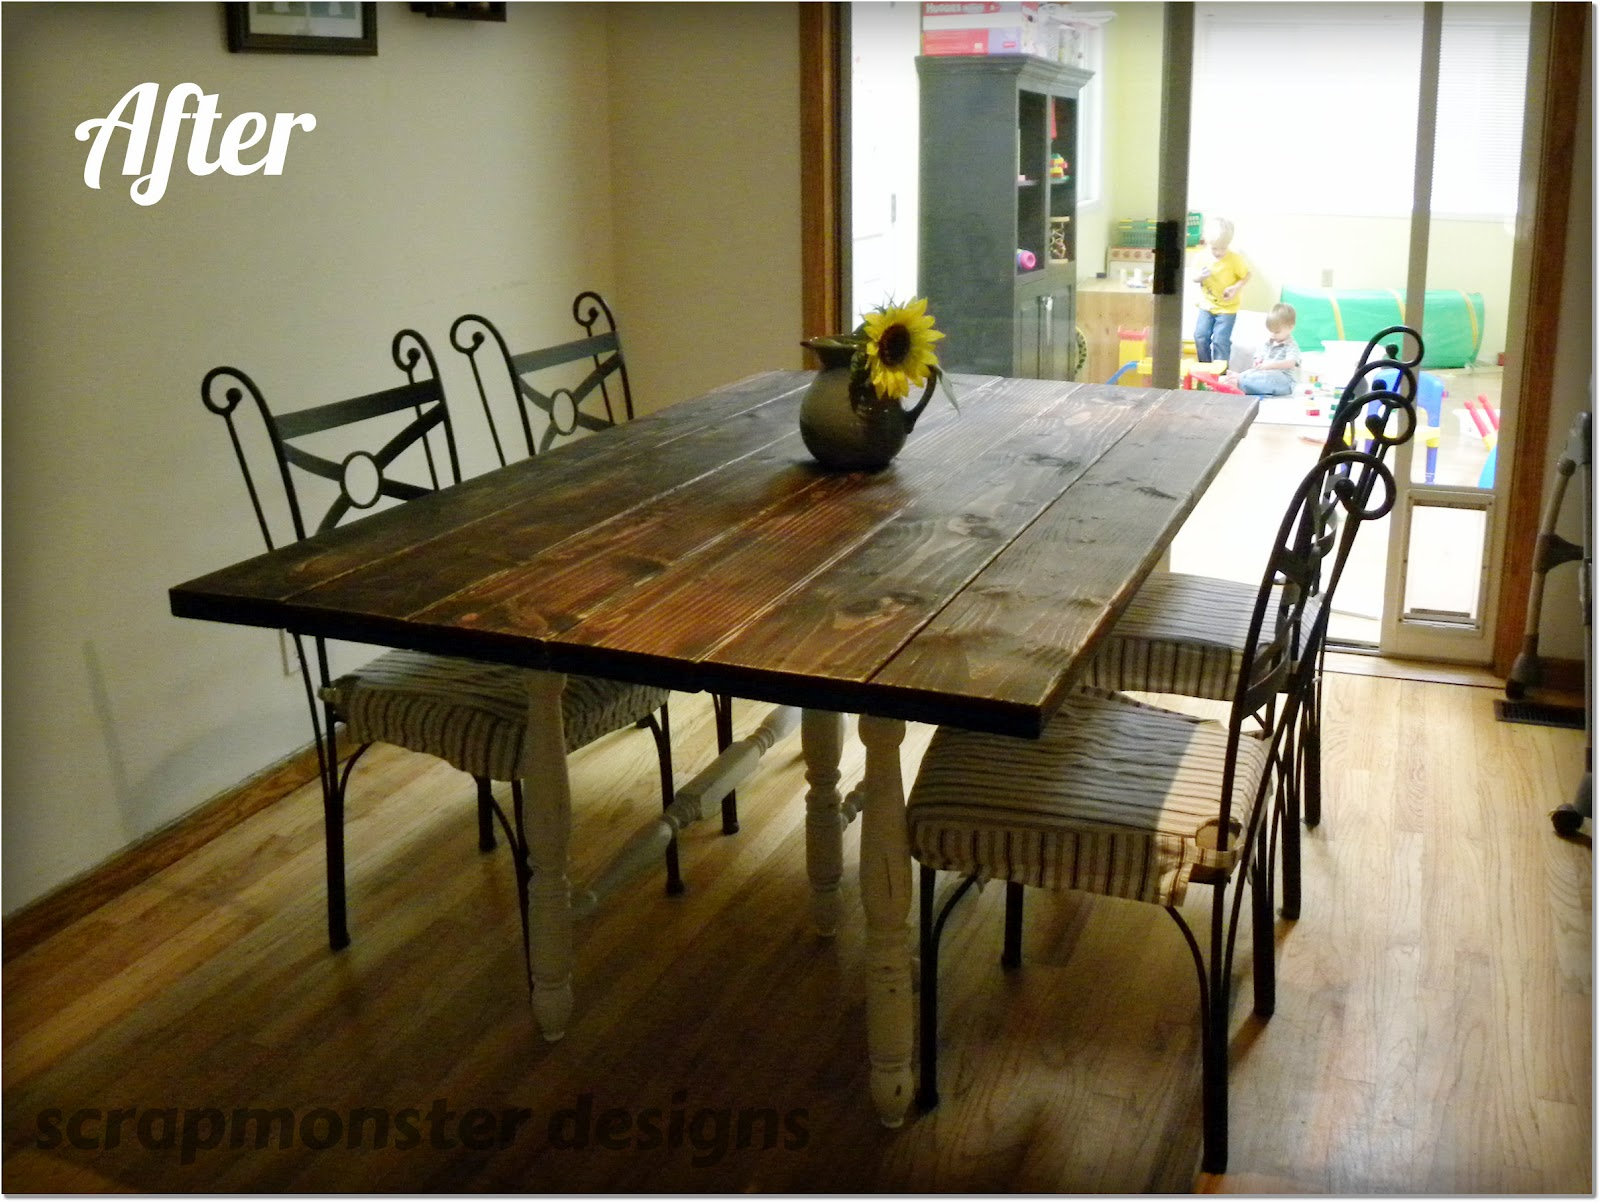 Scrapmonster rustic dining table make over for Rustic dining room table